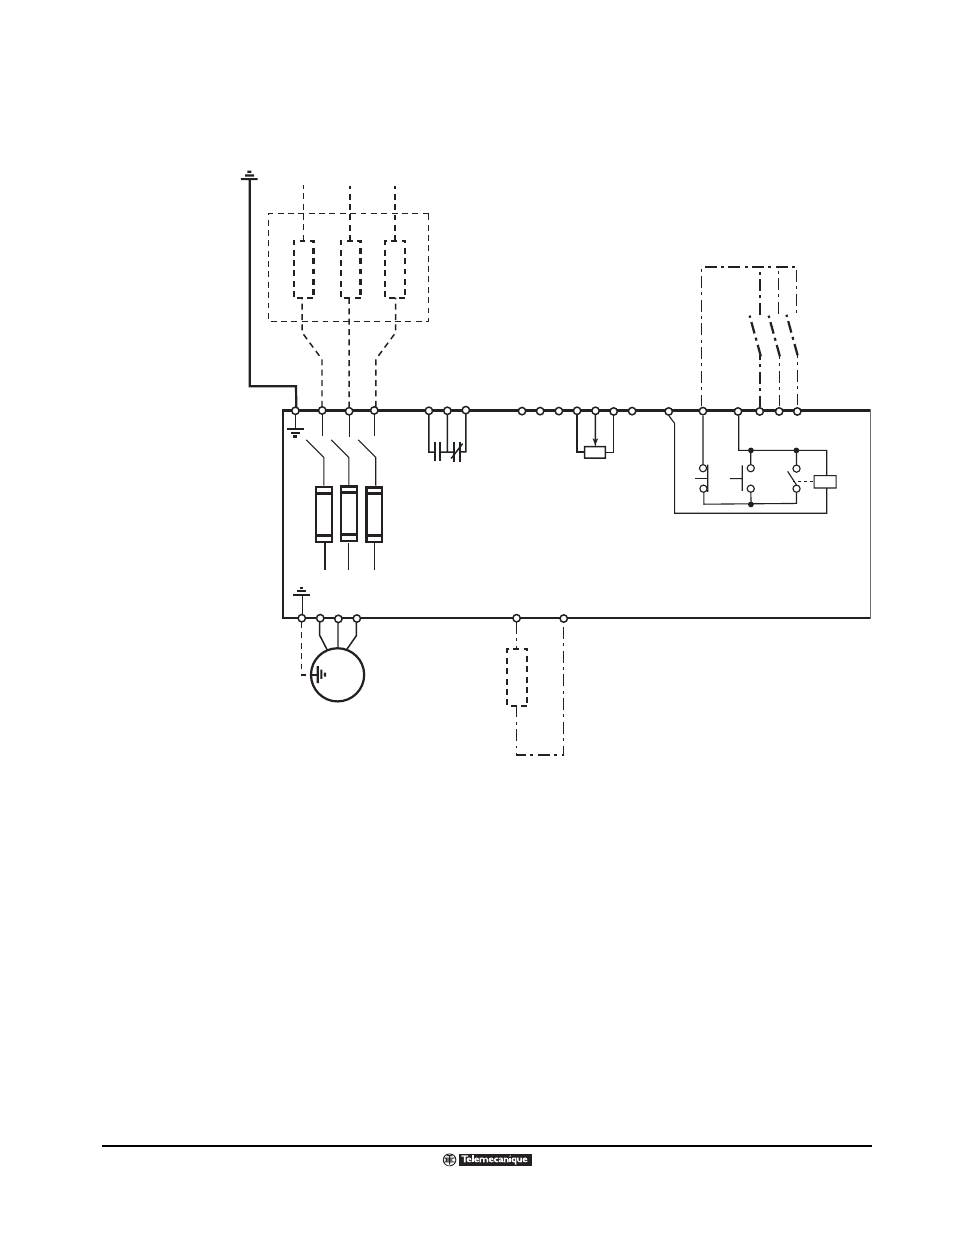 medium resolution of altivar 58 trx ac drives wiring recommendations schneider electric altivar 58 trx user manual page 112 232